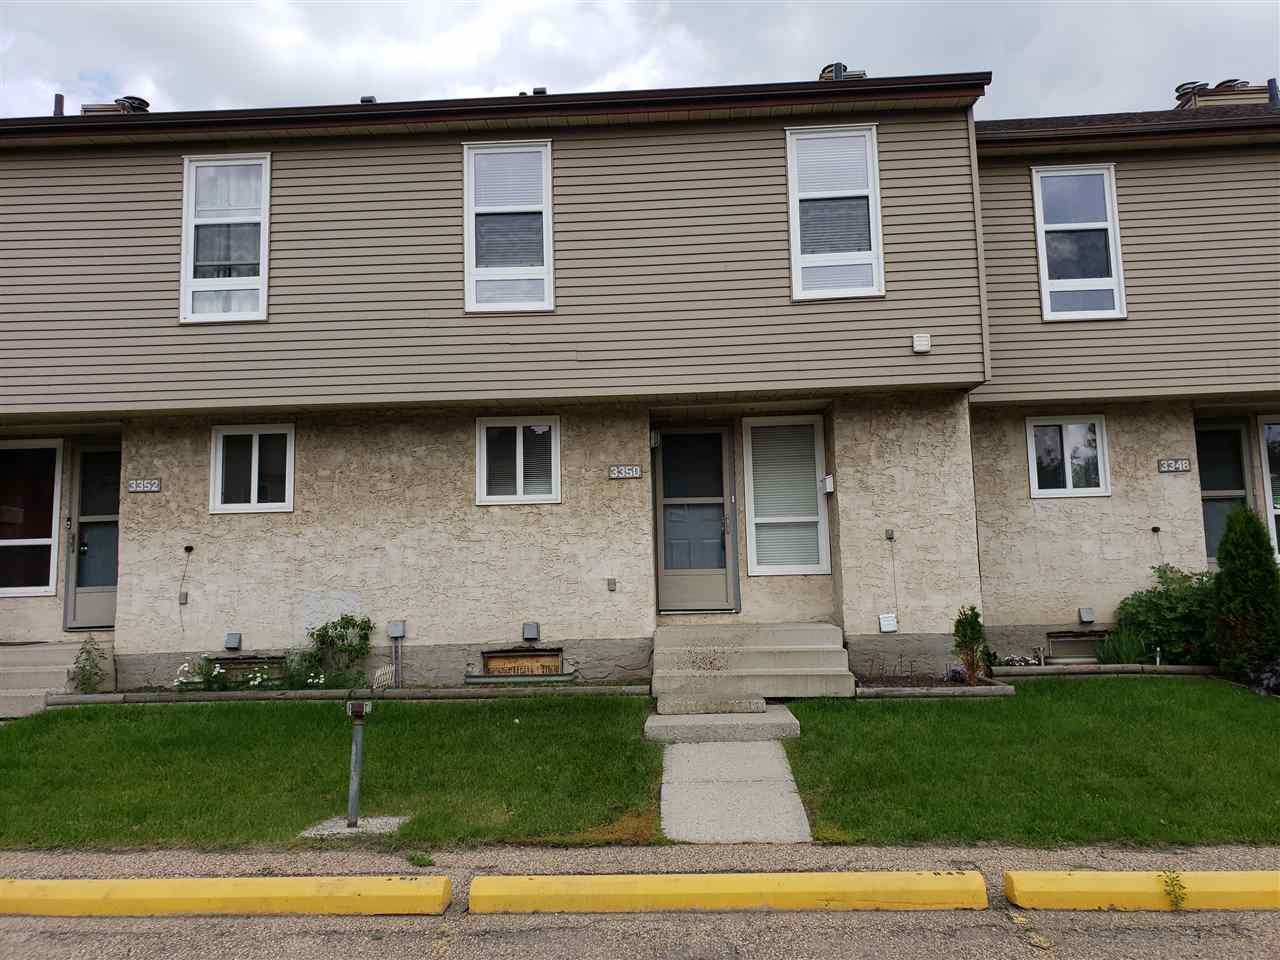 Main Photo: 3350 116A Avenue in Edmonton: Zone 23 Townhouse for sale : MLS®# E4164444